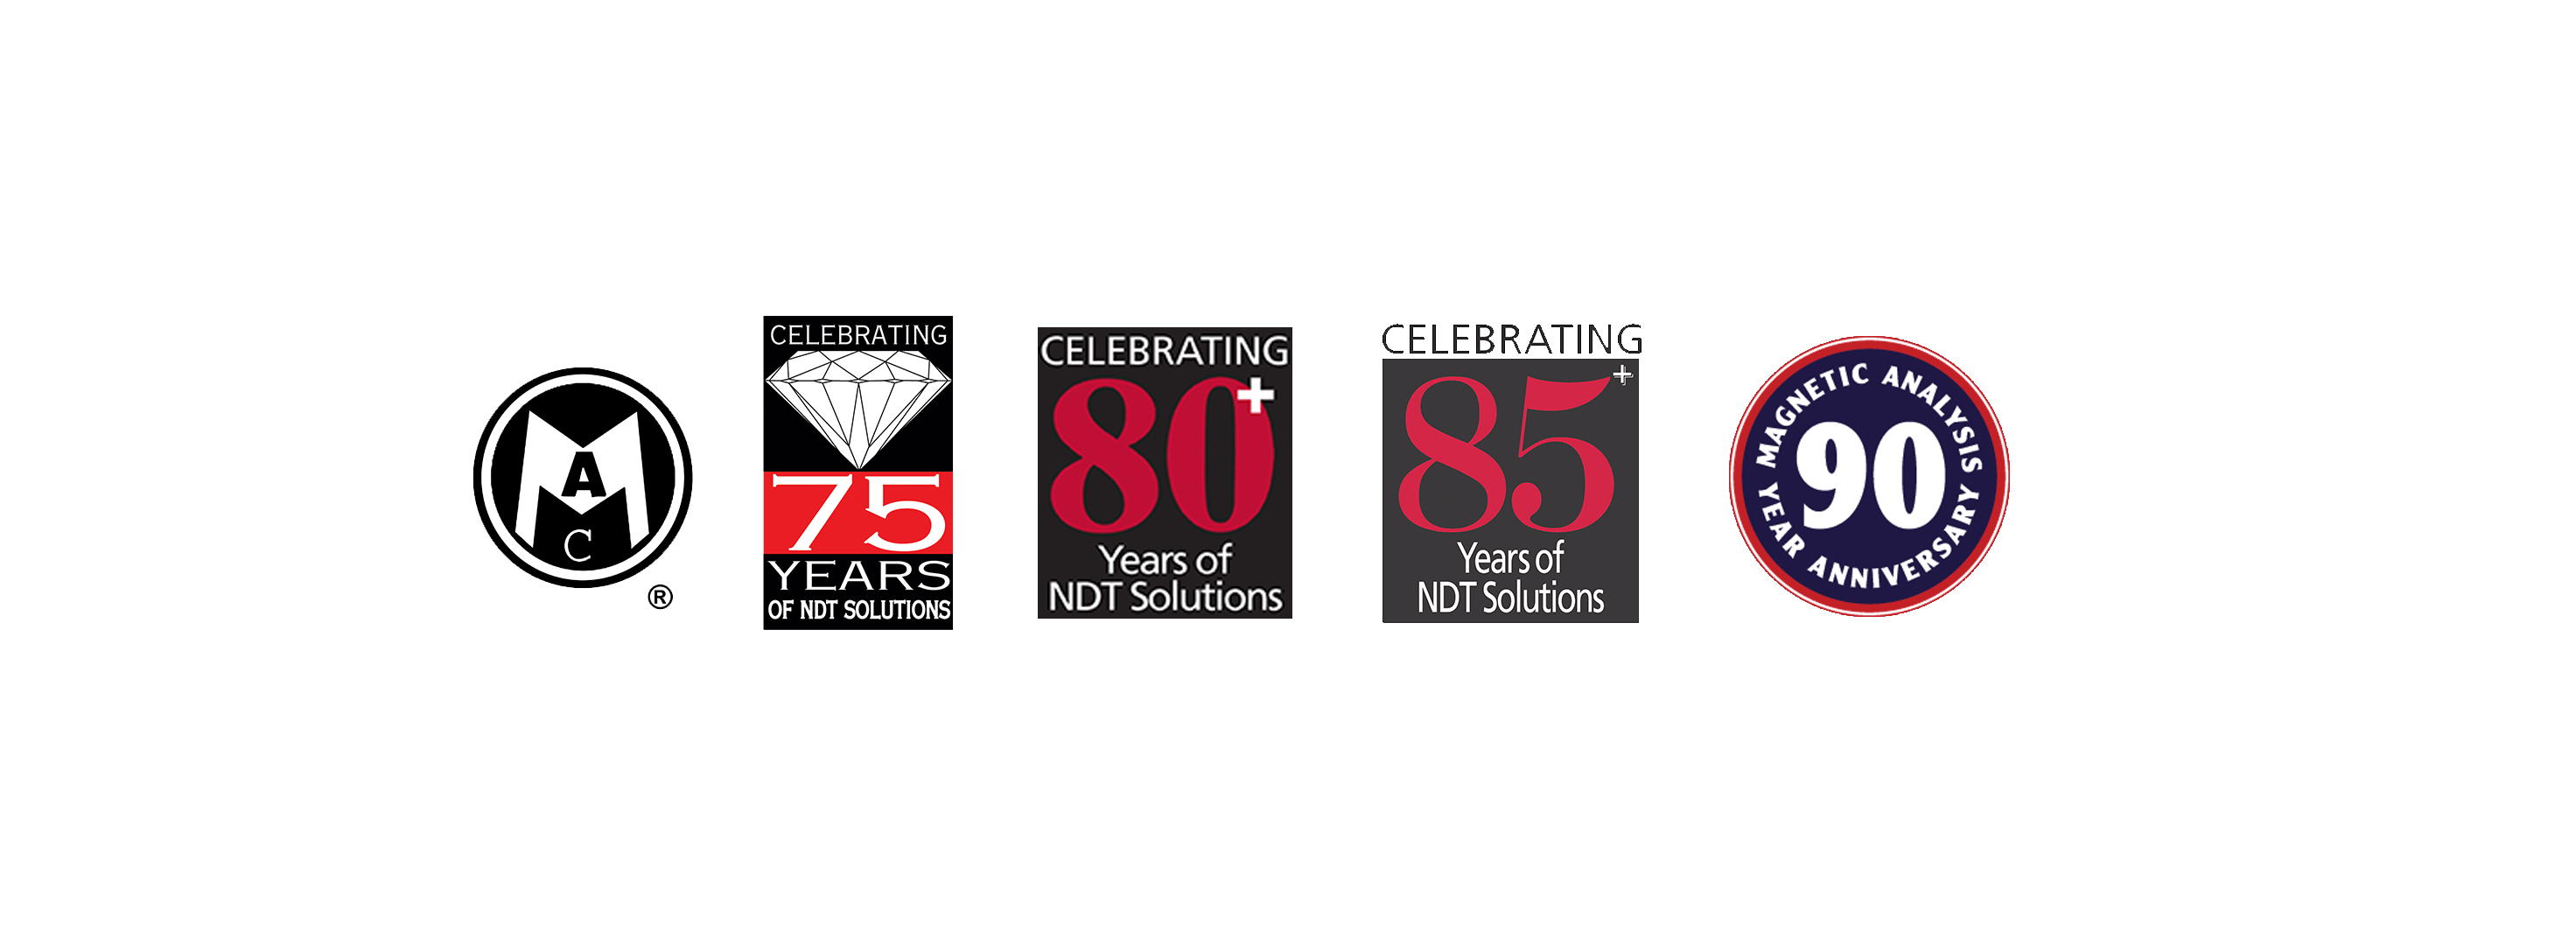 90 Years in the Business of NDT